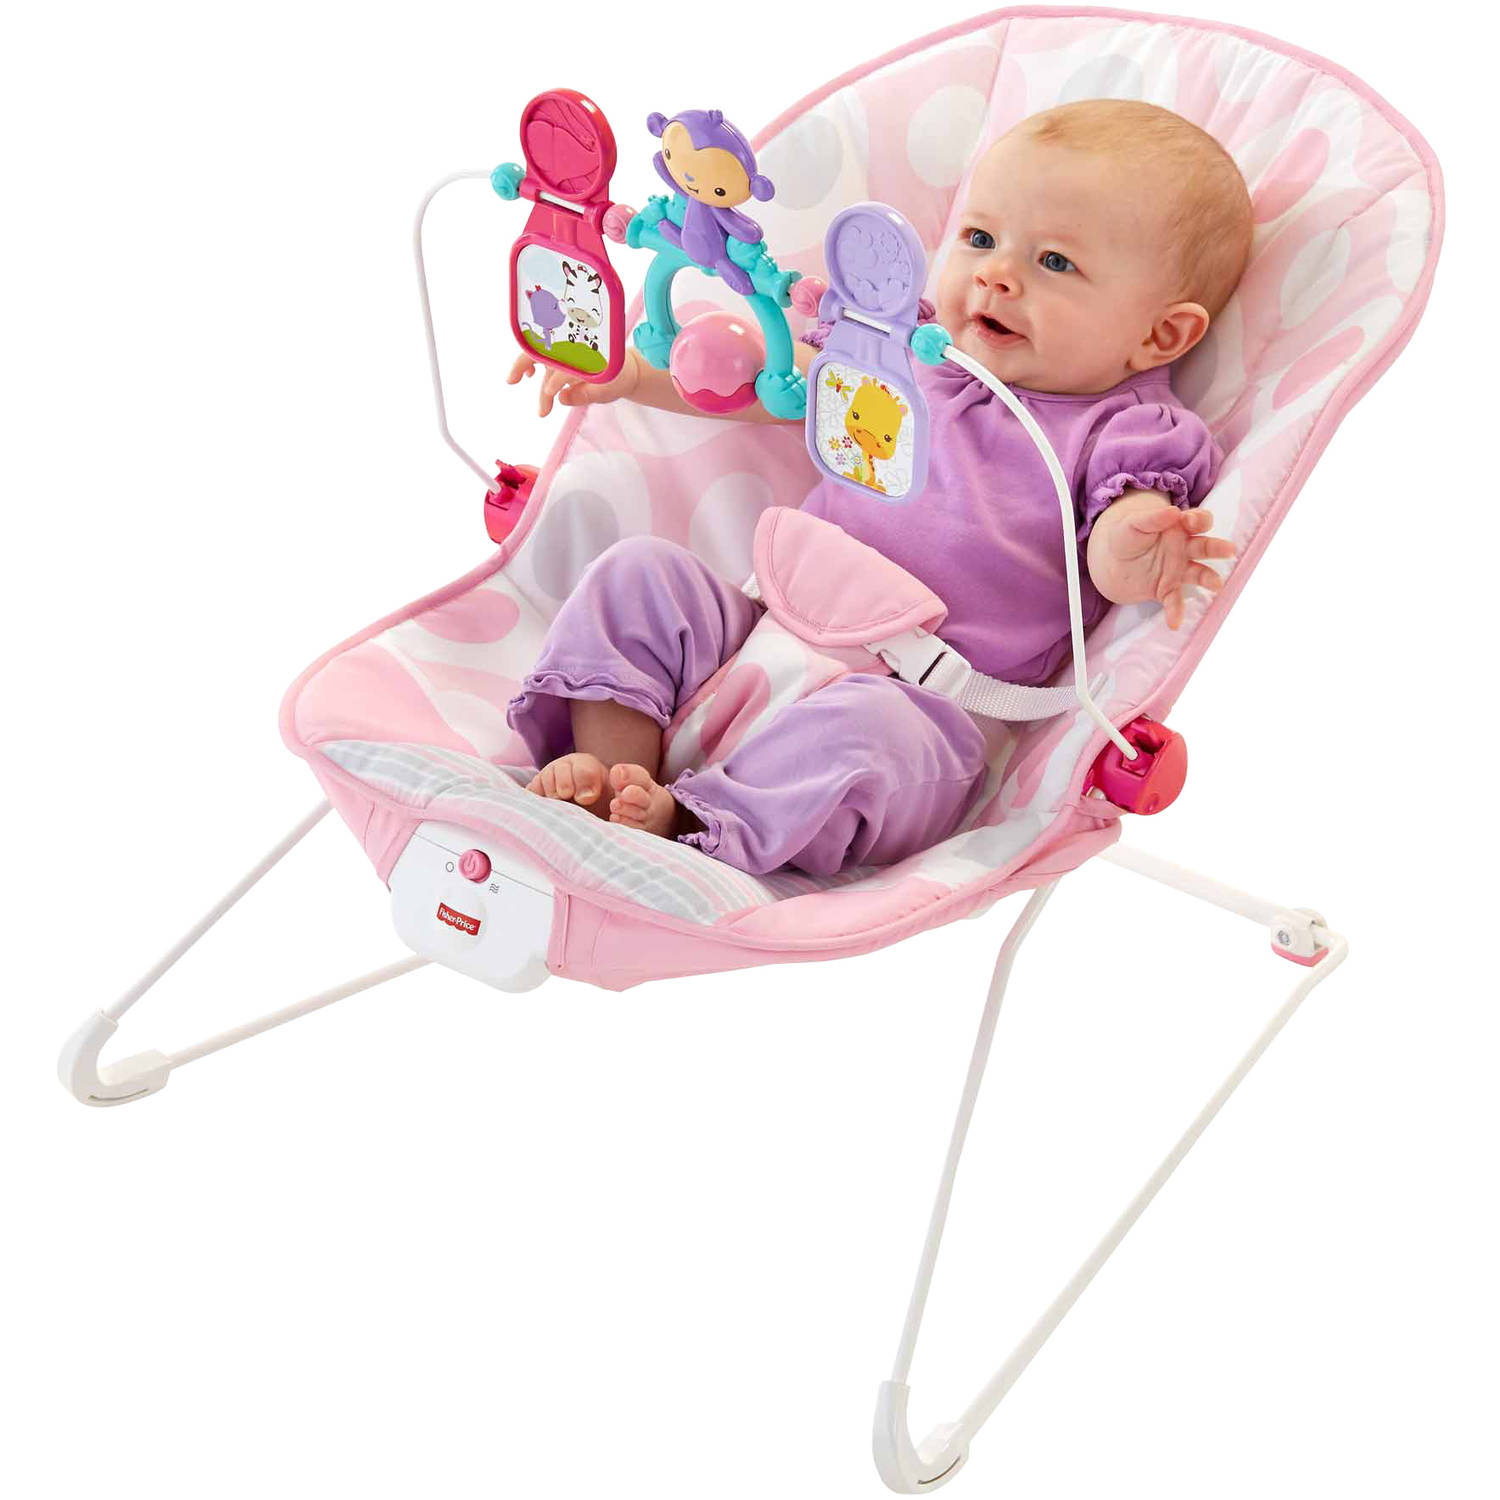 baby bouncer - baby furniture